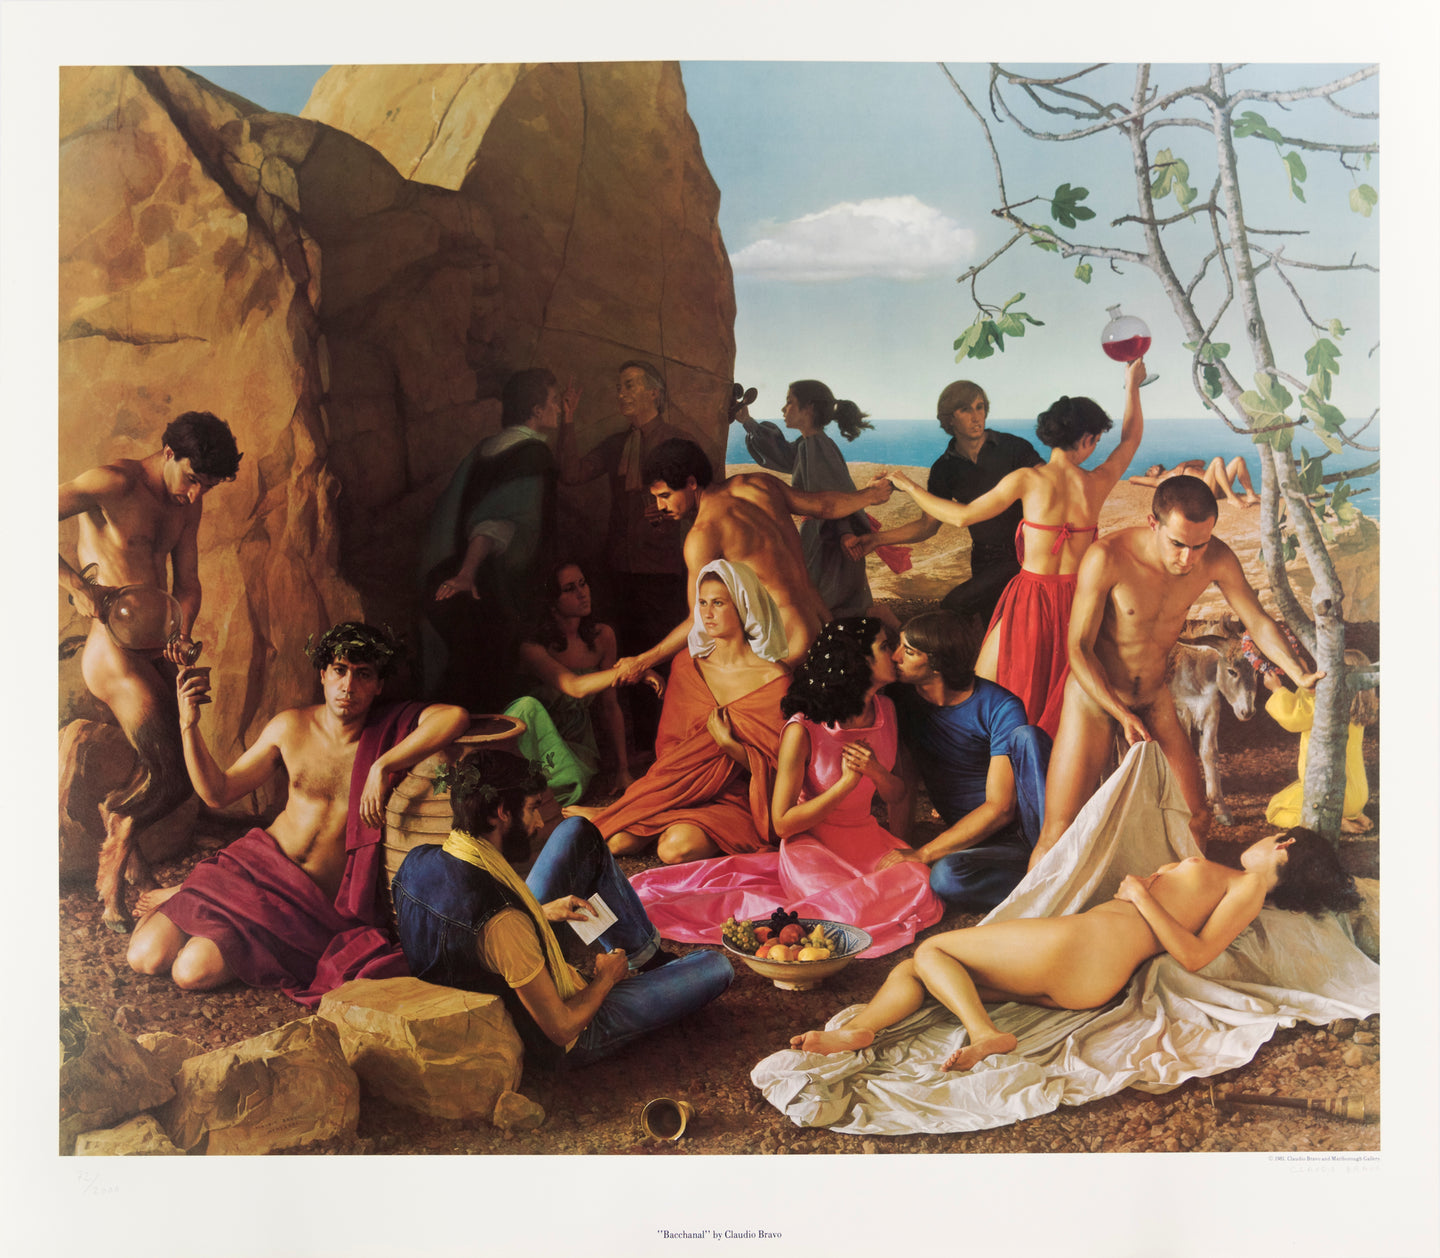 Bacchanal party scene poster by Claudio Bravo